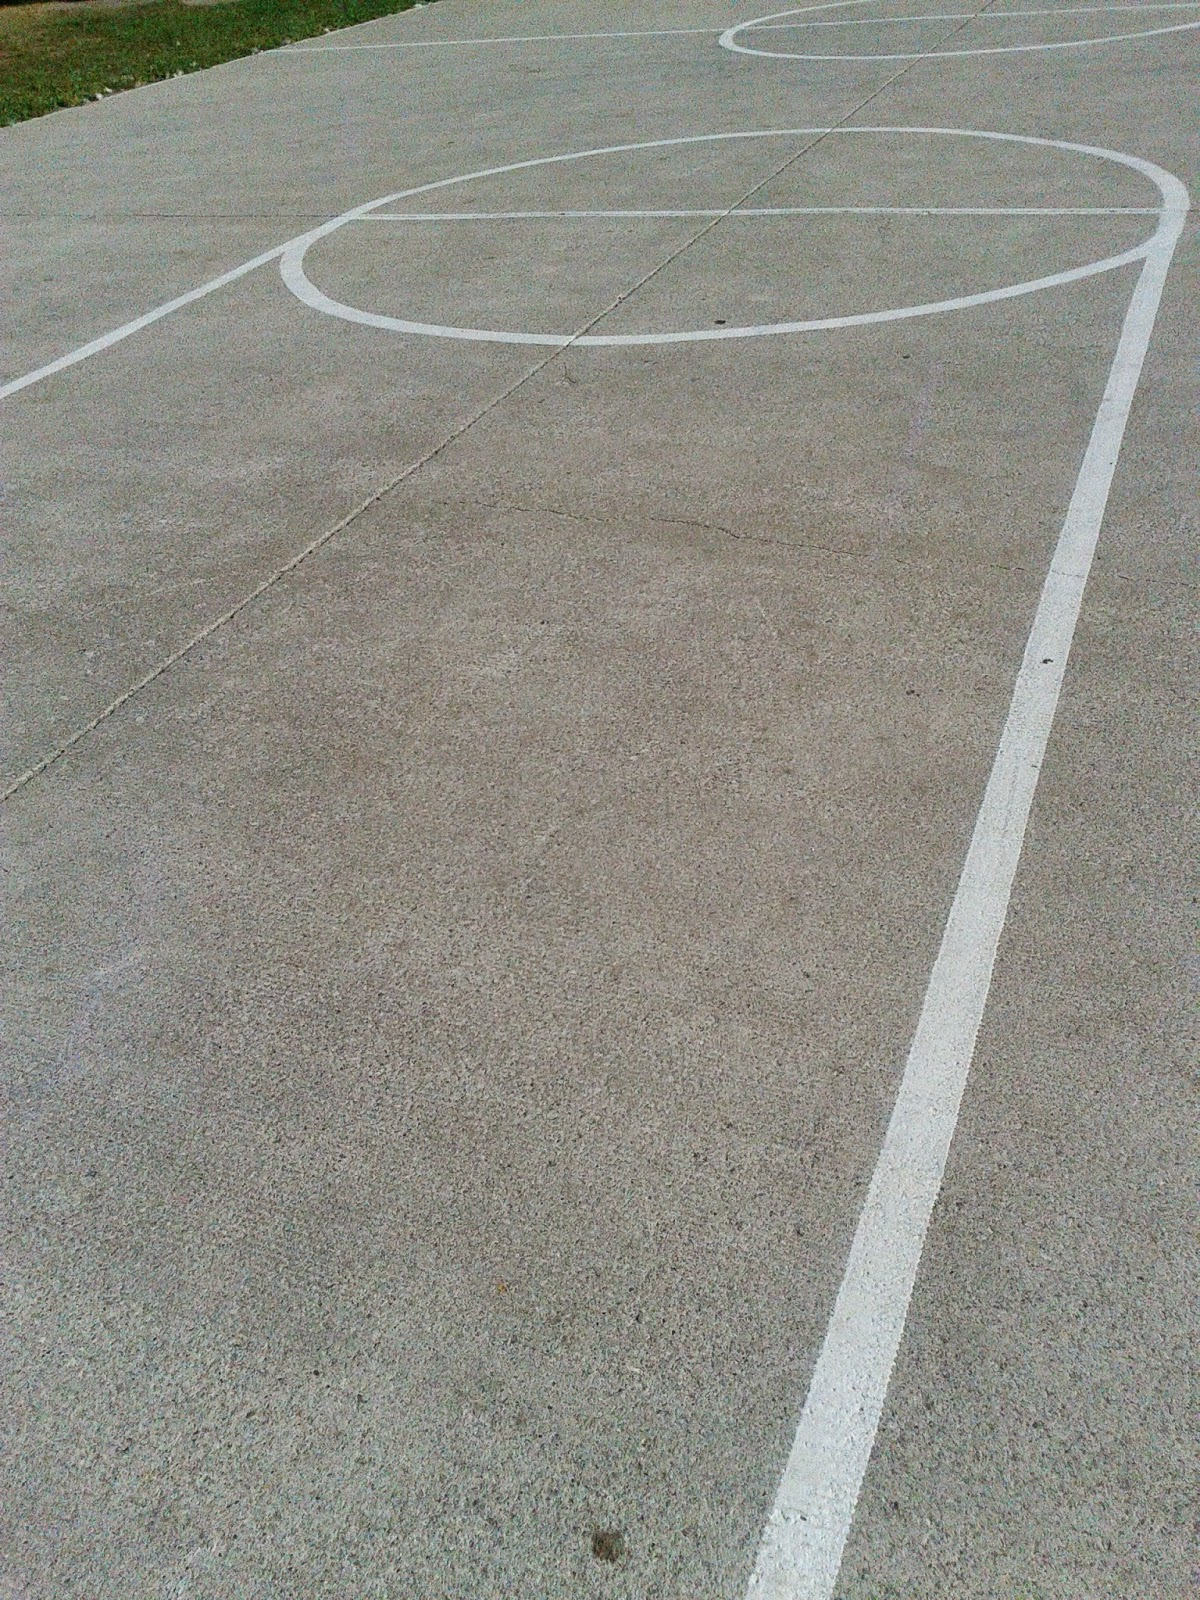 Stock photo: Basketball lines drawn on an outdoor court